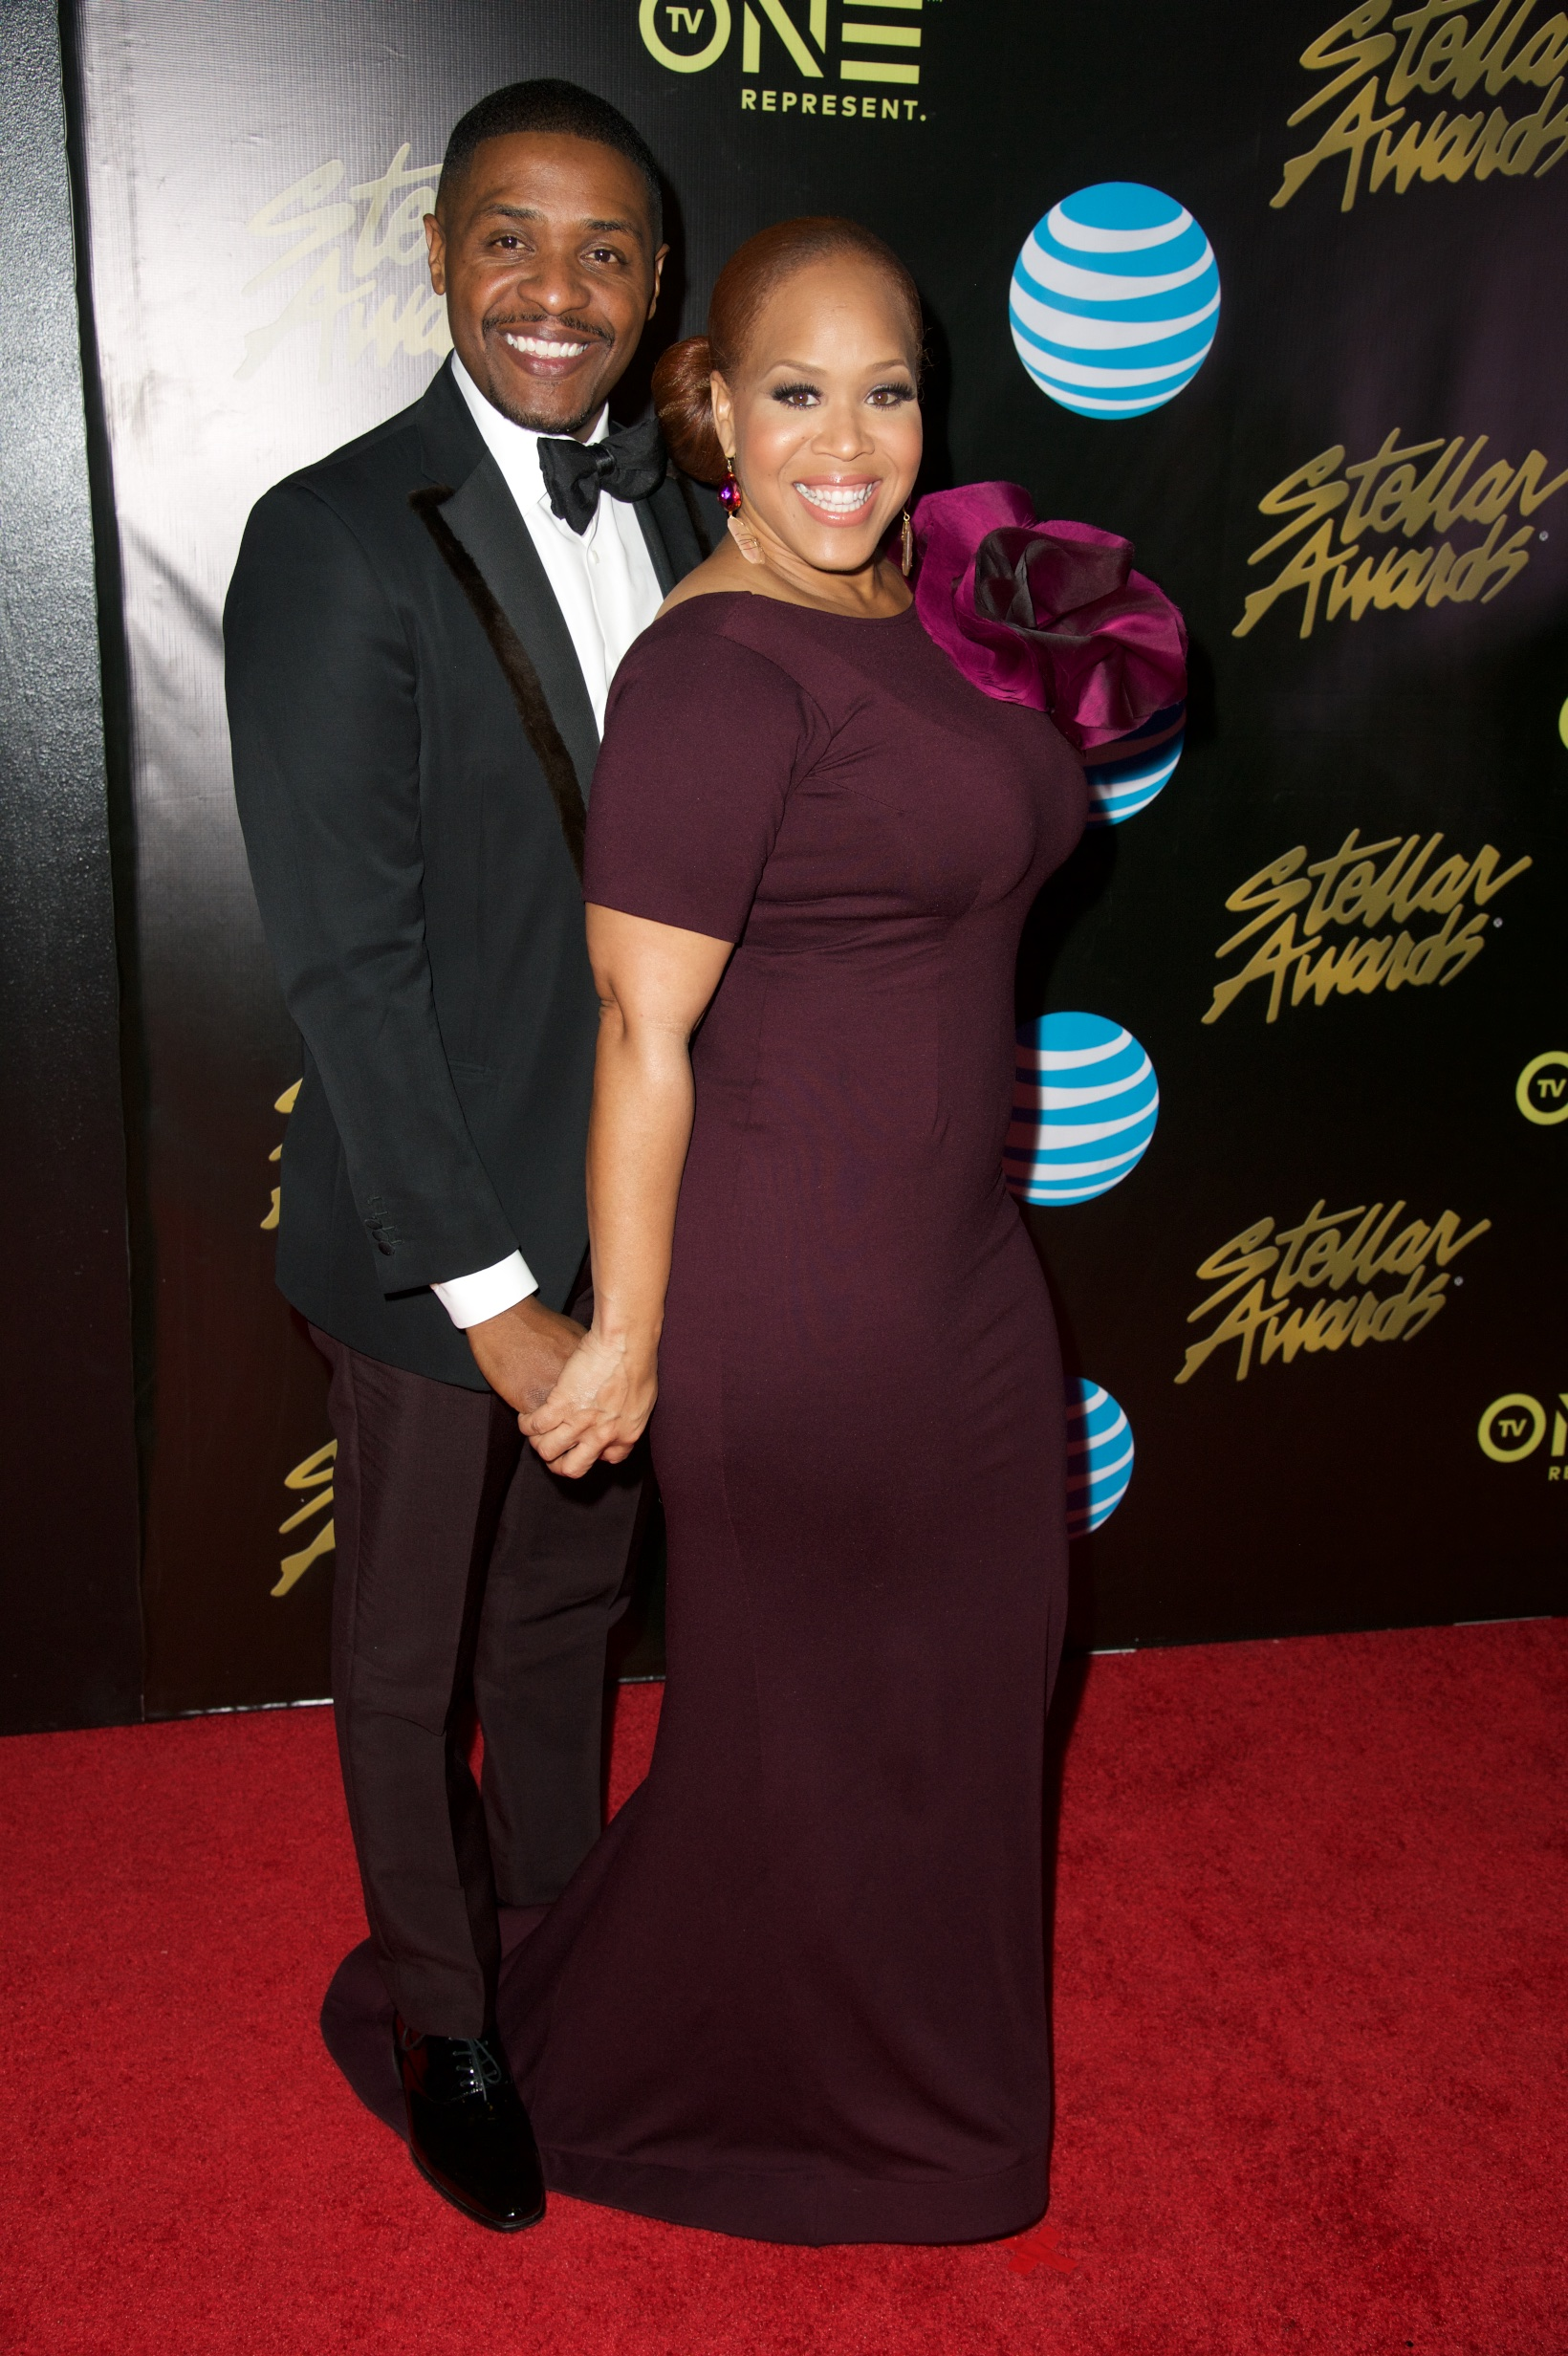 Teddy and Tina Campbell on the Red Carpet at 2016 Stellar Awards